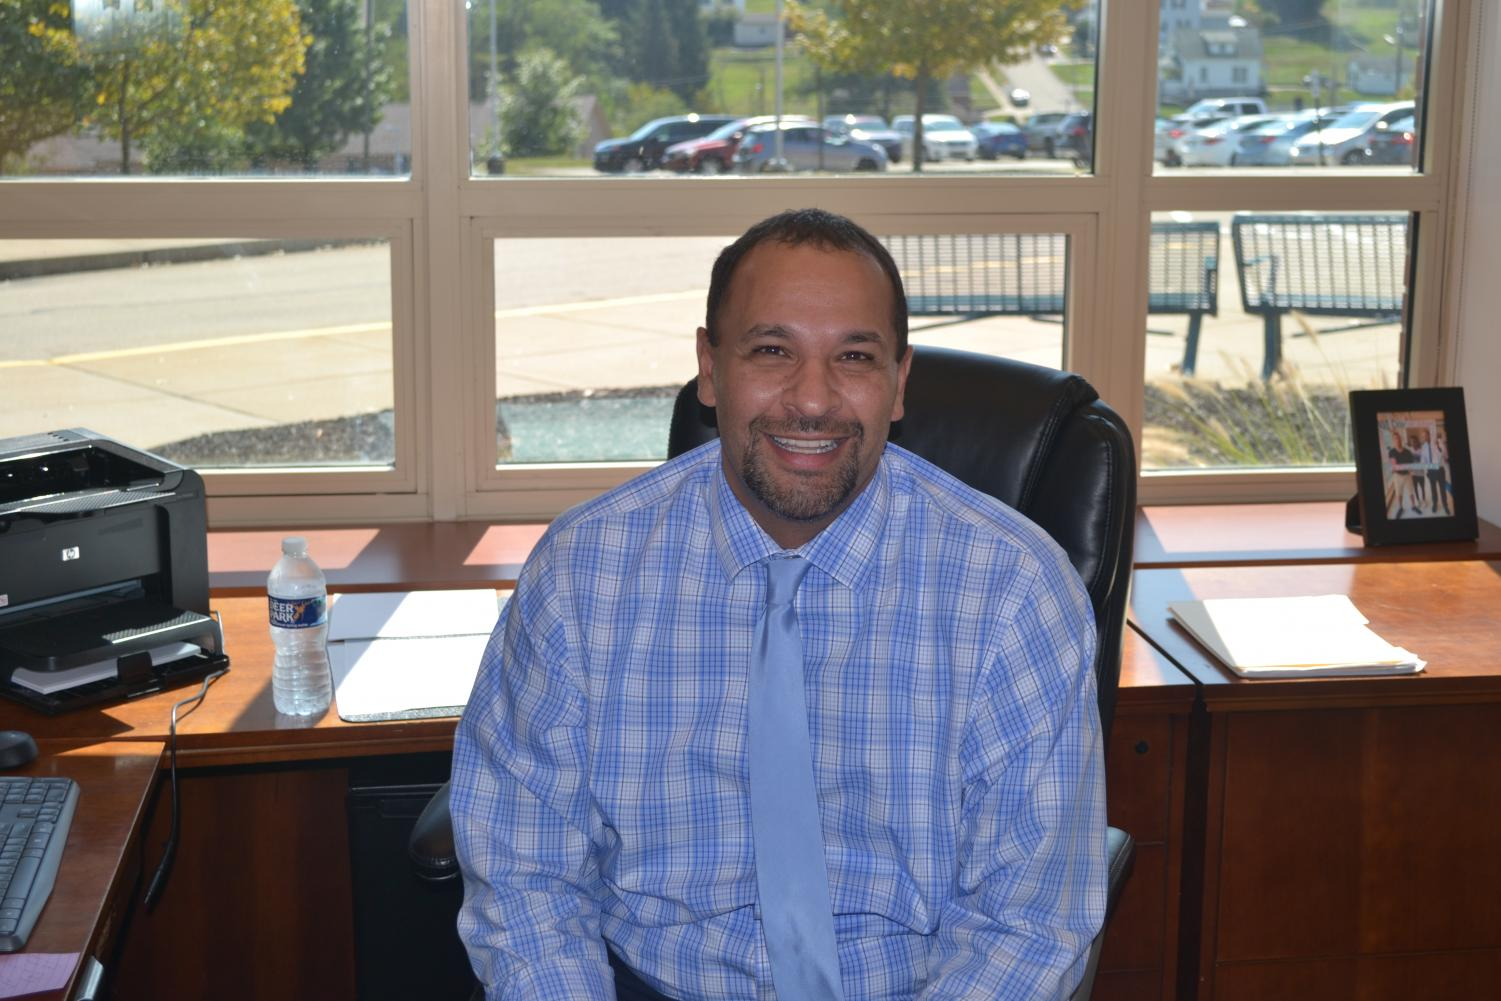 Dr. Demian smiles in his new office at THS.